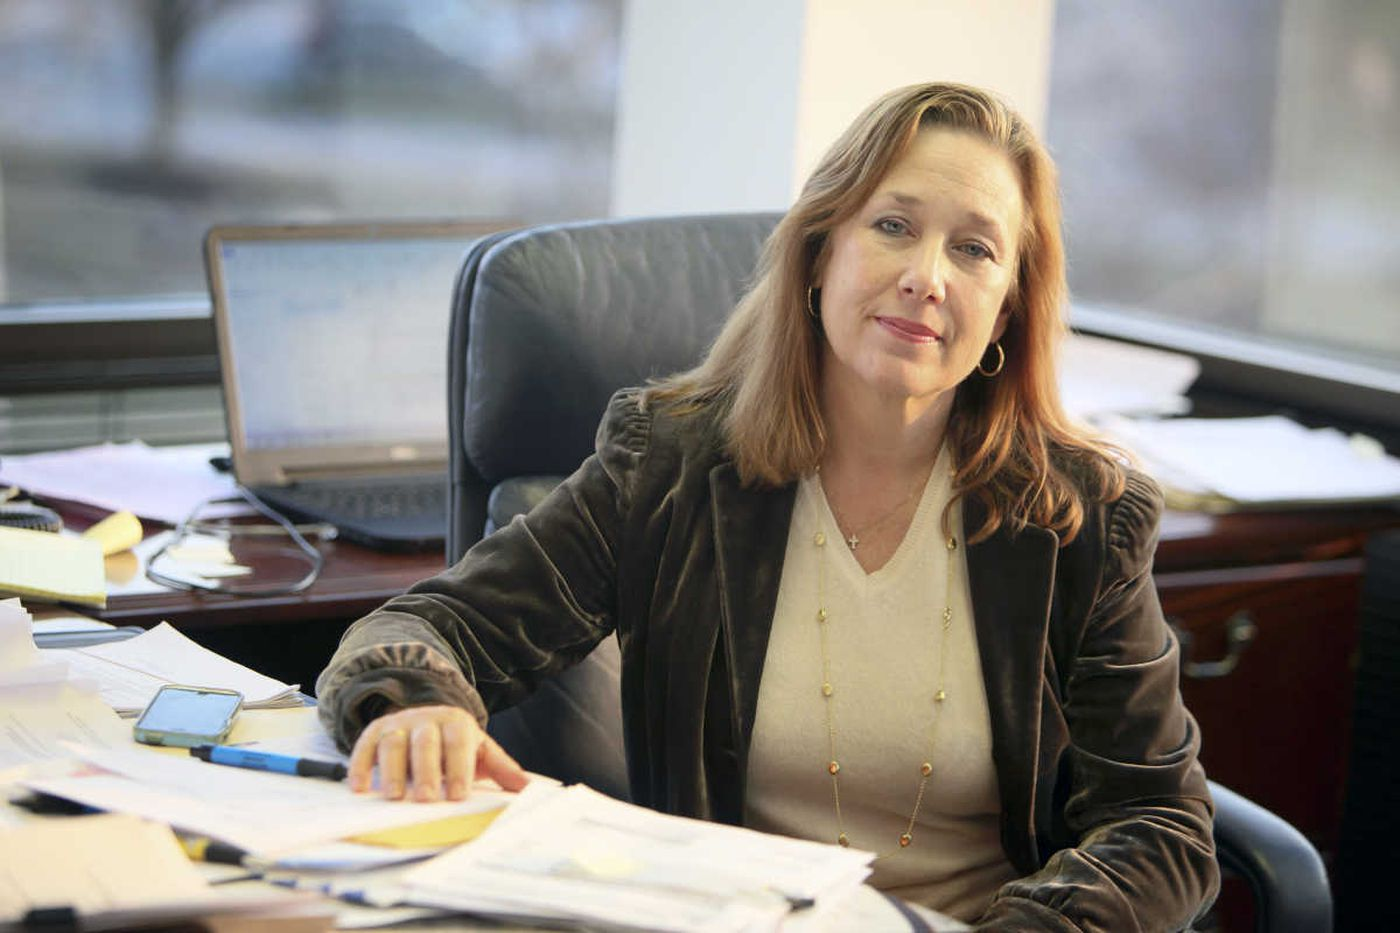 Philly lawyer Nancy Raynor sues over $1M sanction